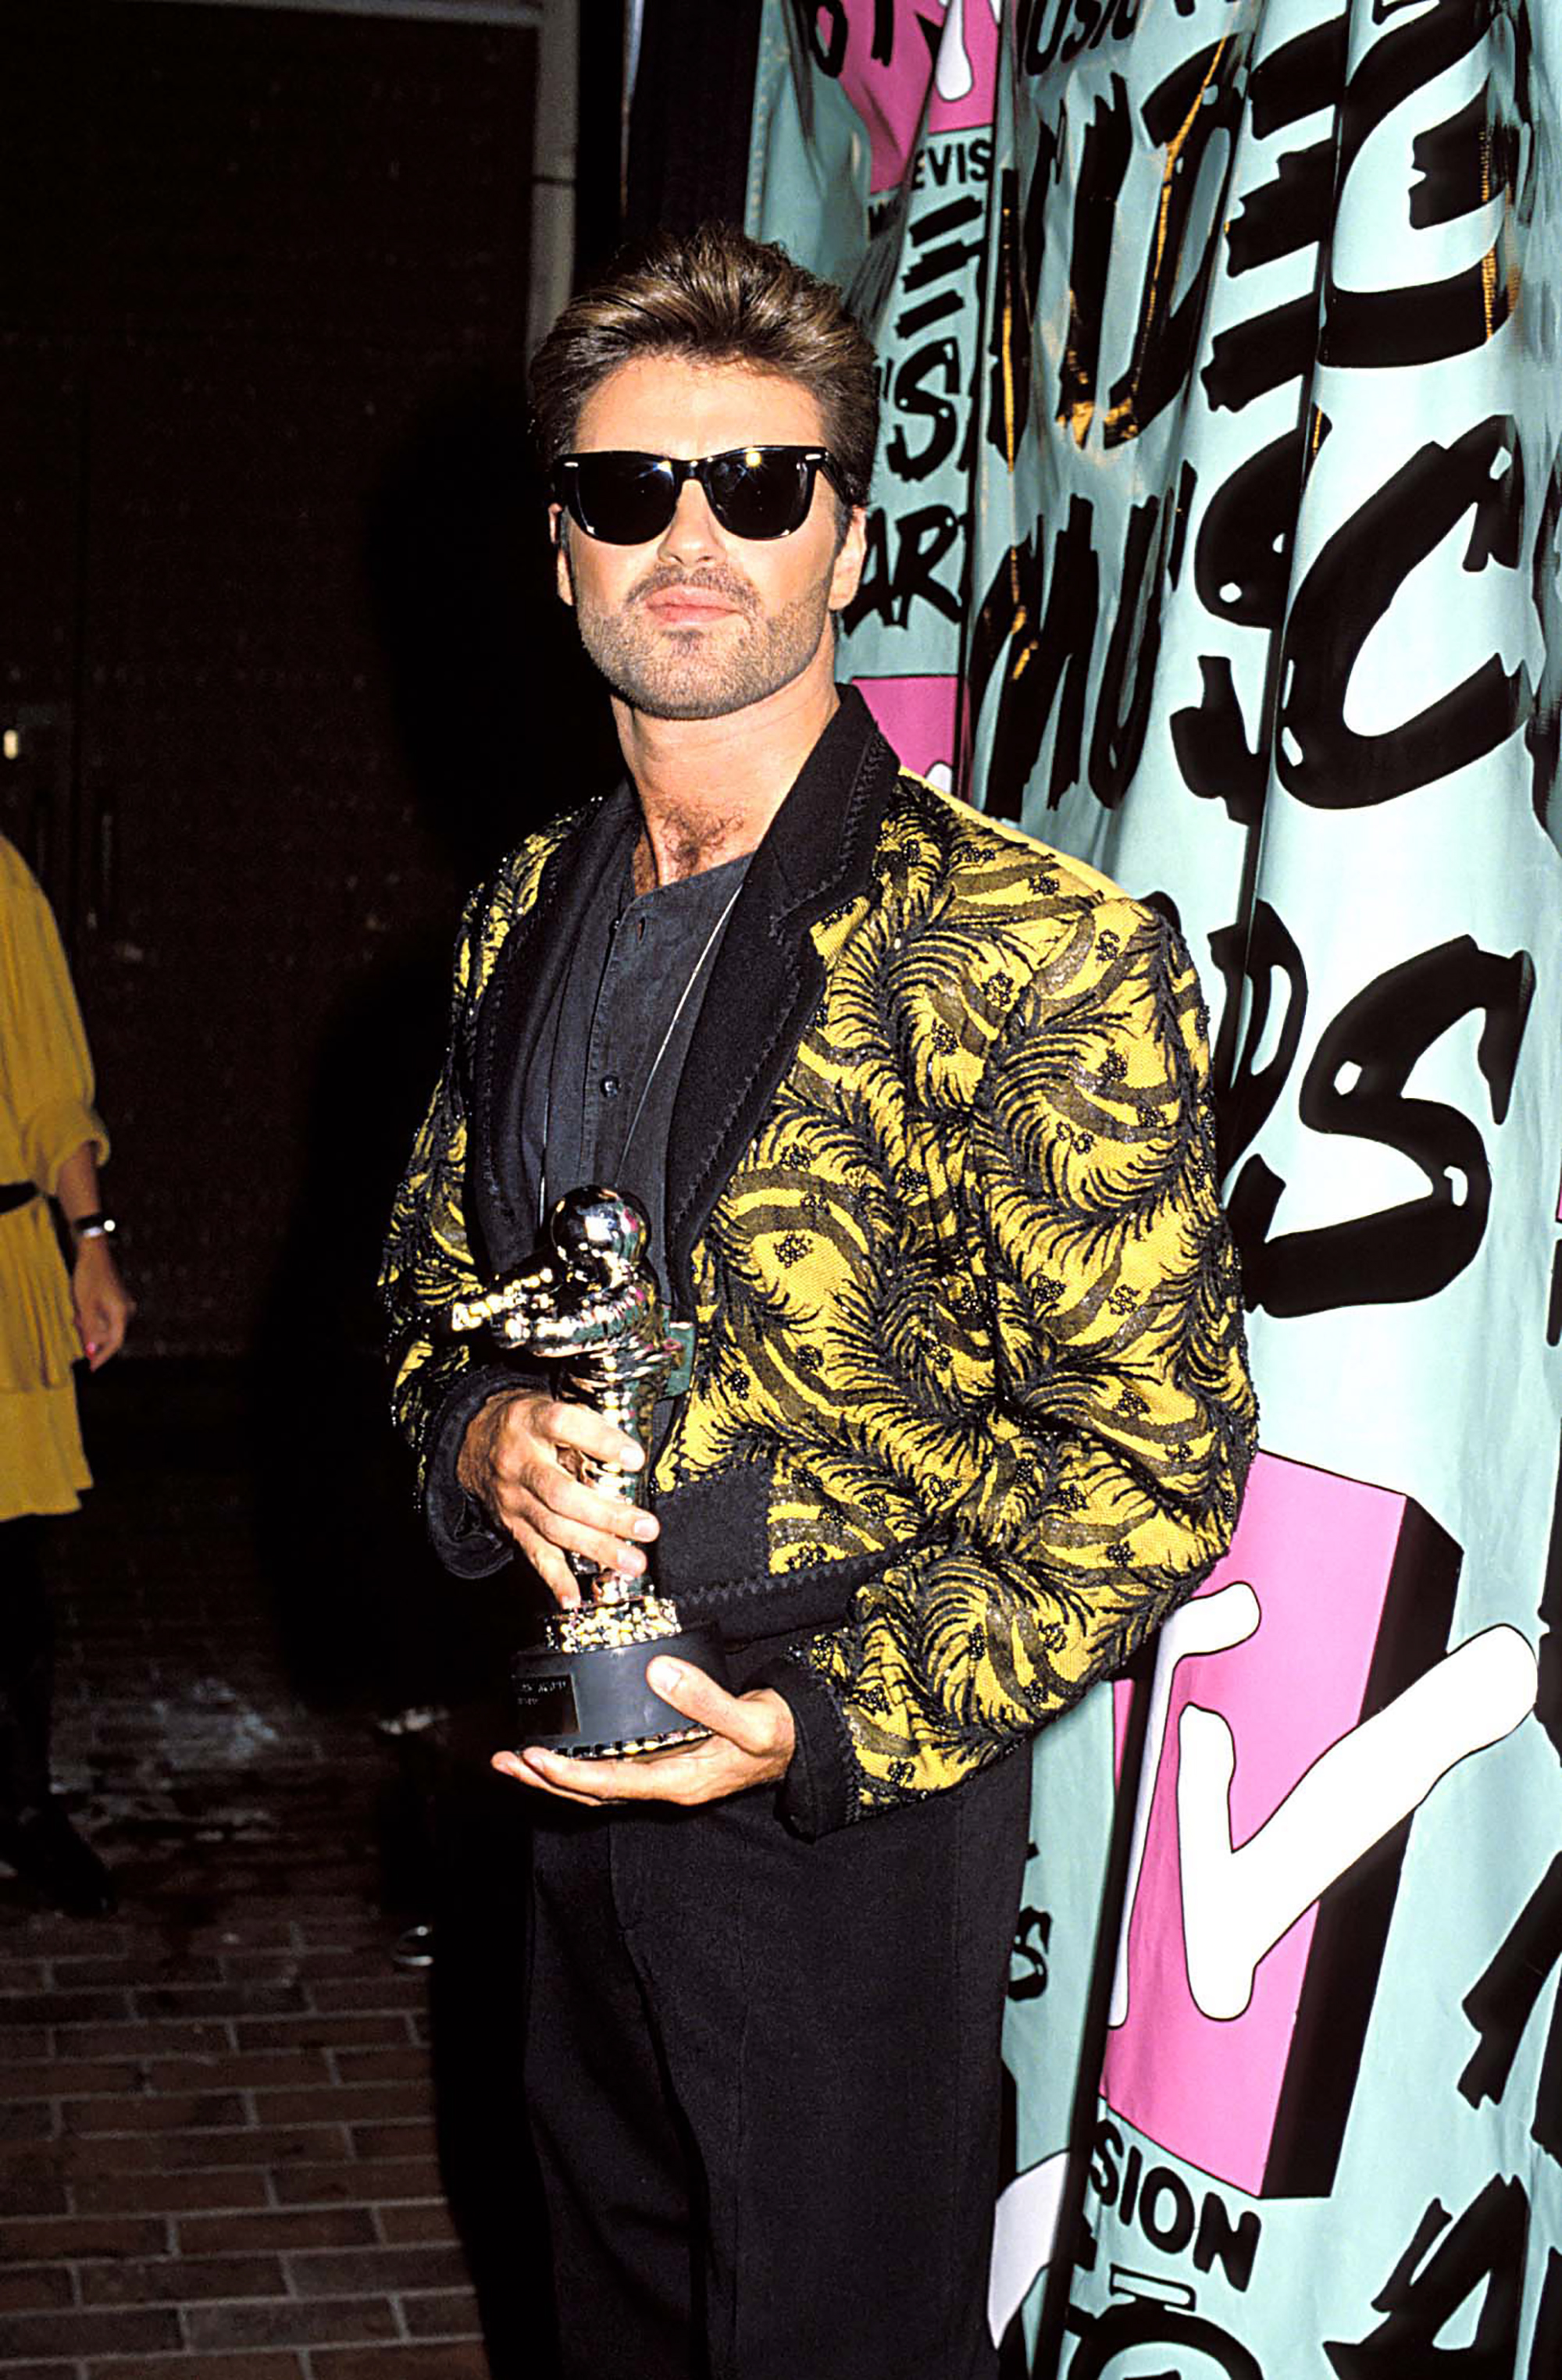 George Michael during the 1989 MTV Video Music Awards in Los Angeles, on Sept. 9, 1989.